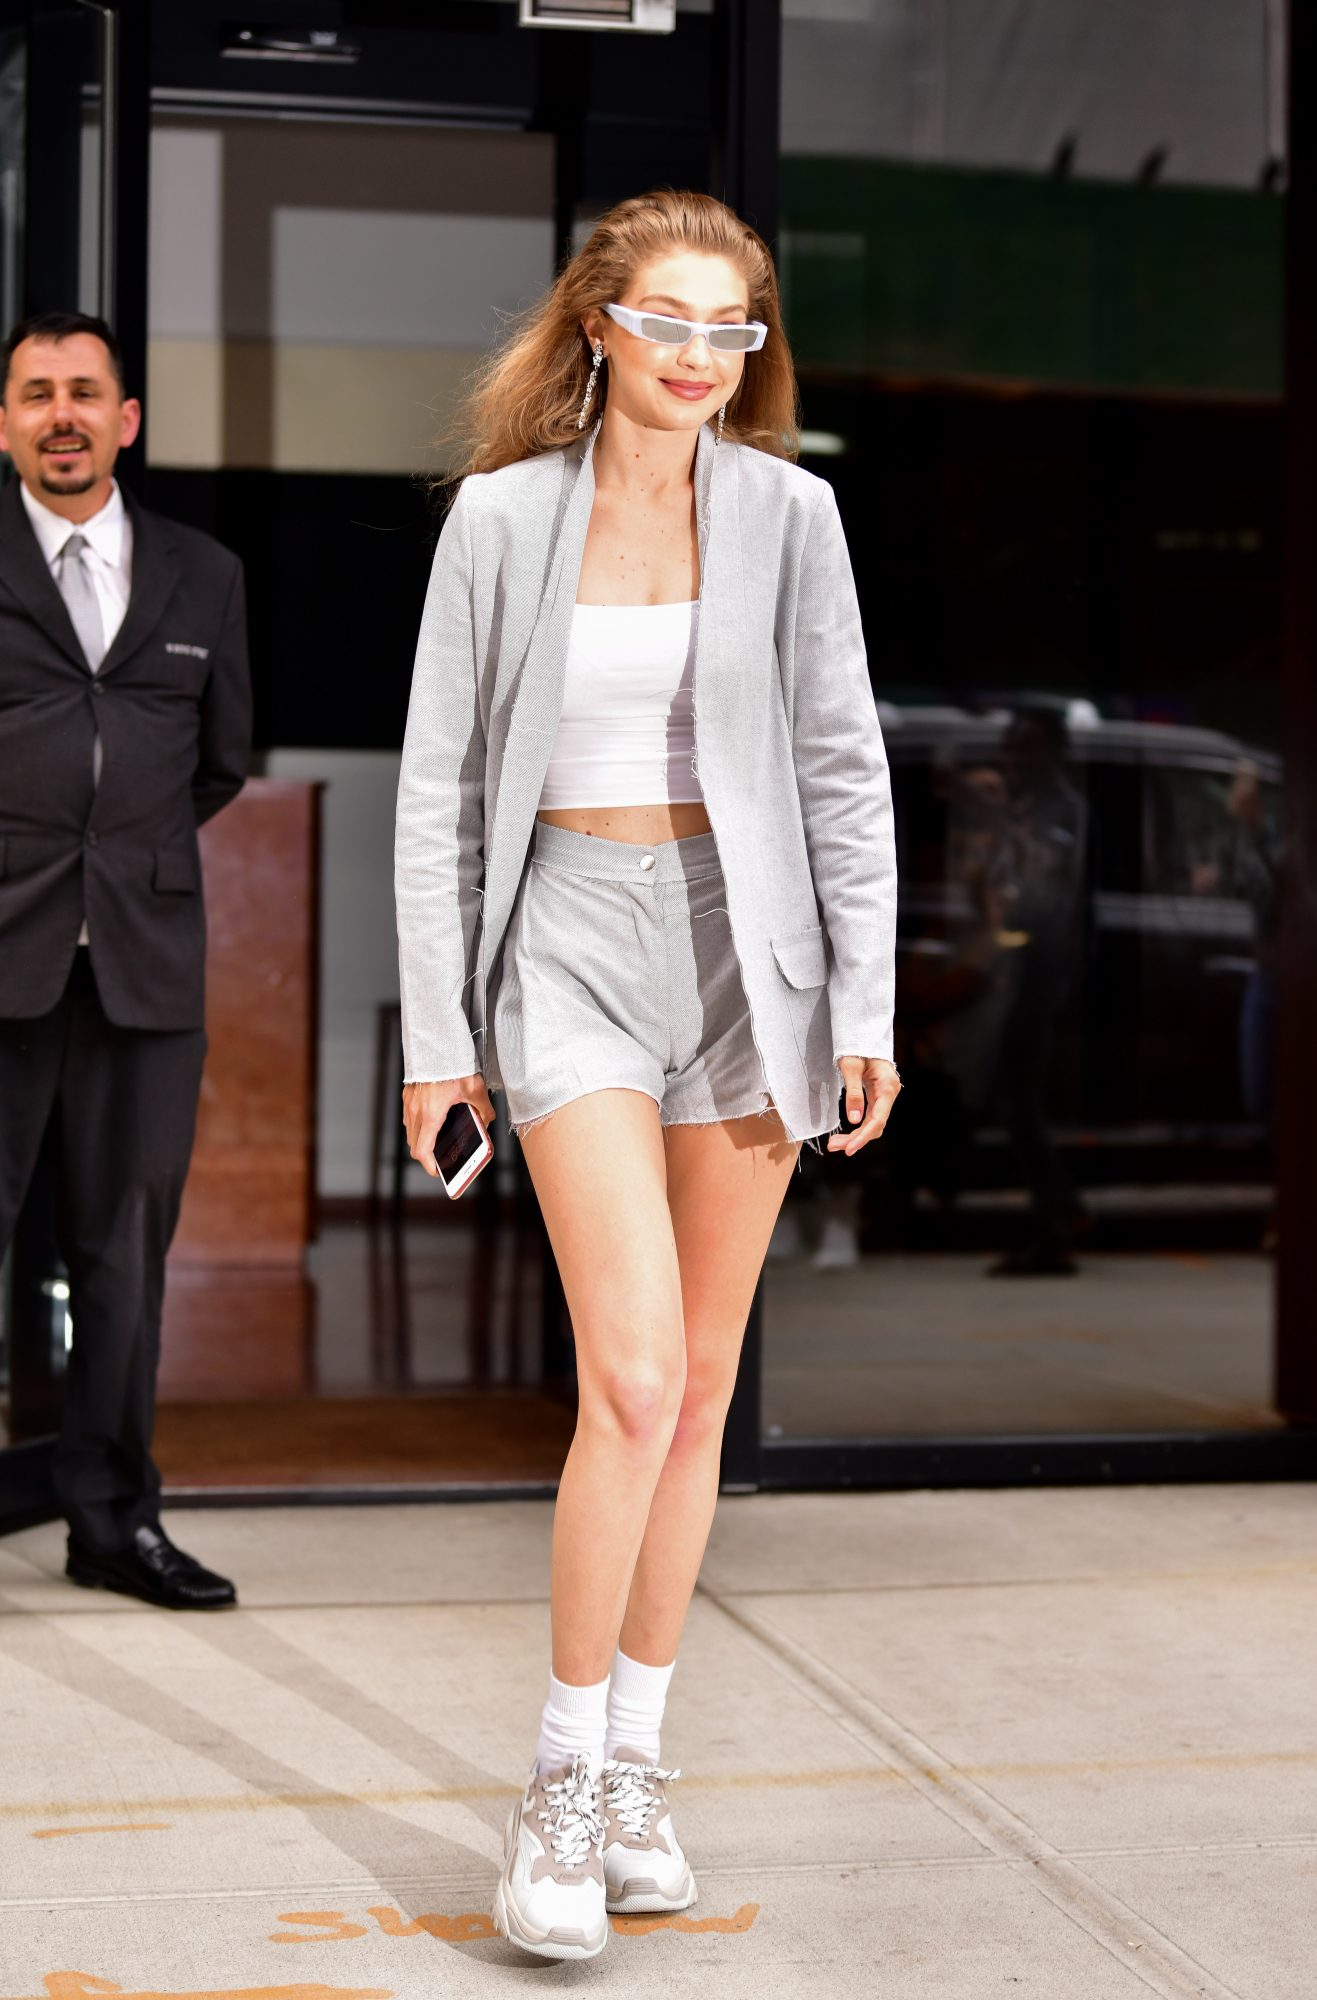 Gigi Hadid Has Been Wearing This Trendy Sneaker Brand for 5 Years — Shop It Now